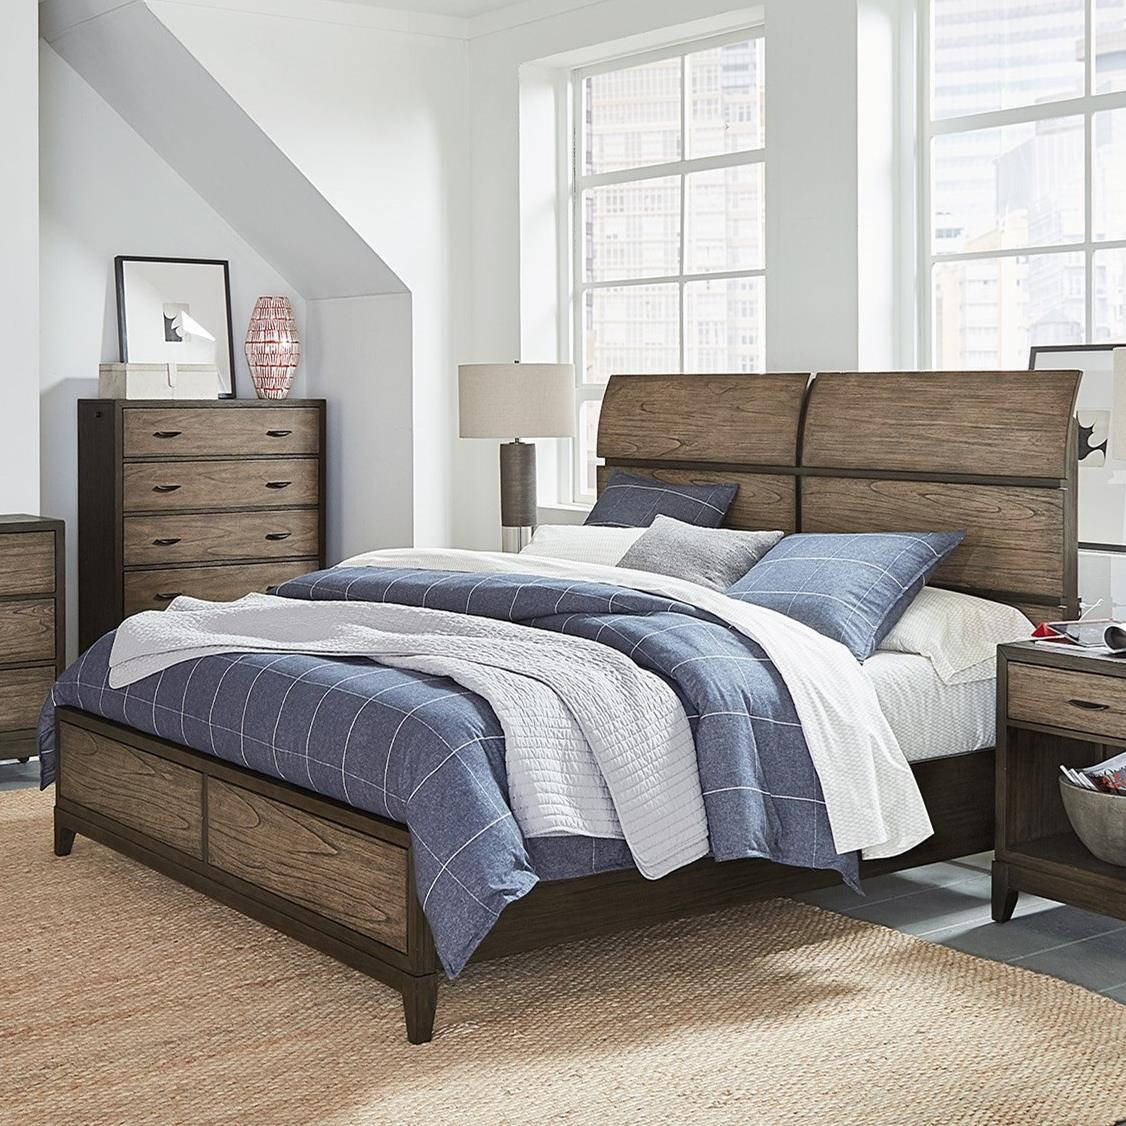 Westlake Queen Sleigh Bed by Aspenhome at Walker's Furniture